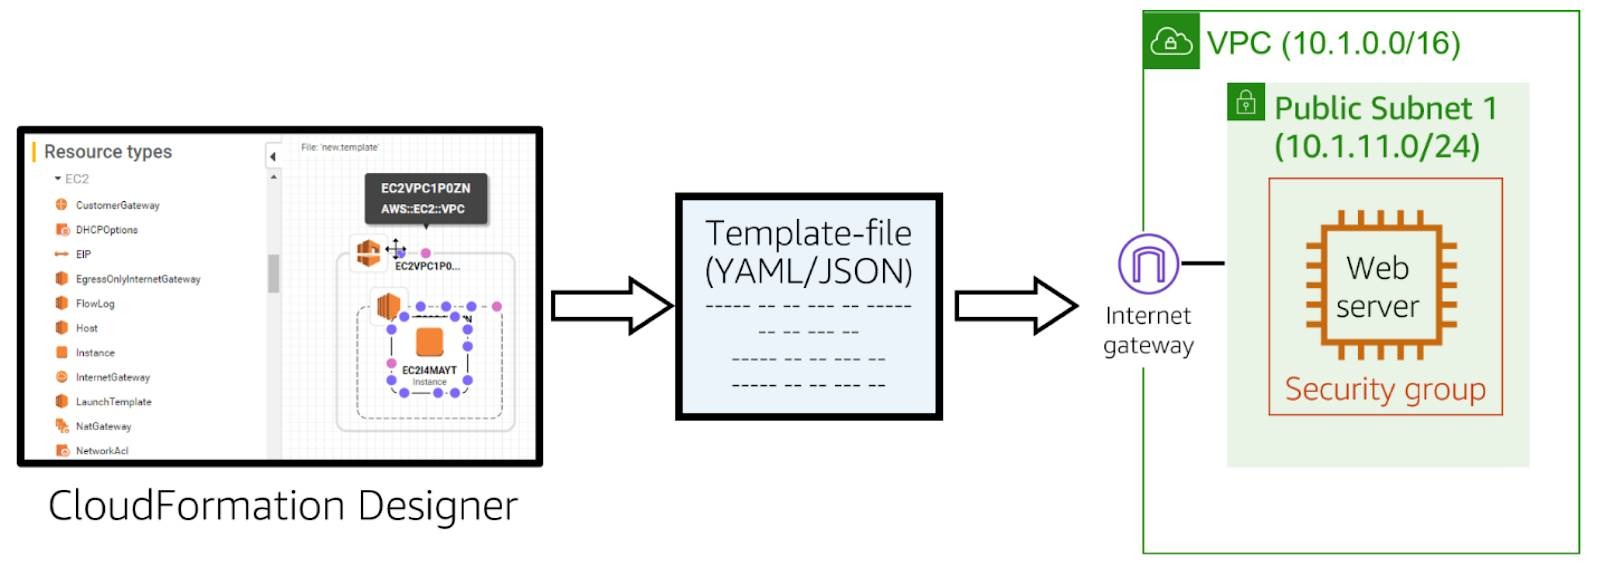 CloudFormation Designer workflow showing the visual designer in the console pointing to a YAML/JASON template file pointing to an architecture diagram with an Amazon EC2 instance inside a security group in a public subnet in a VPC with an internet gateway